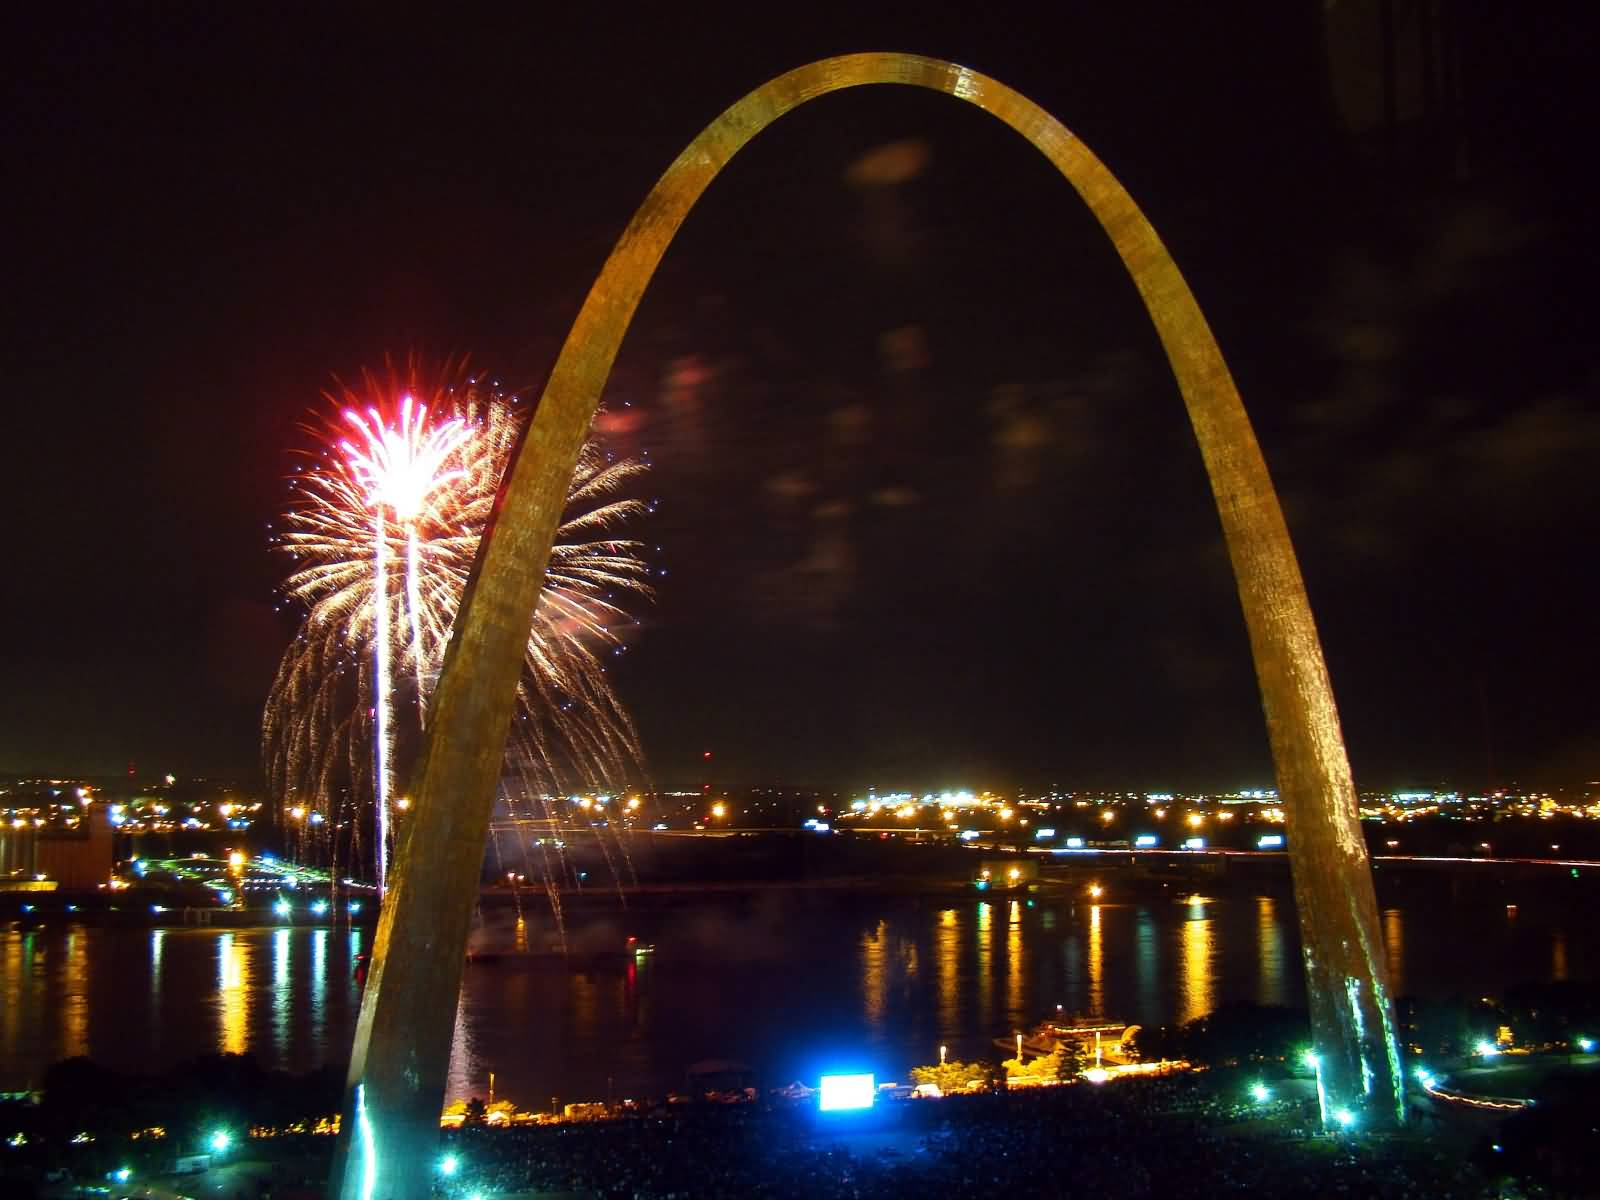 35 Very Beautiful Night Pictures Of The Gateway Arch